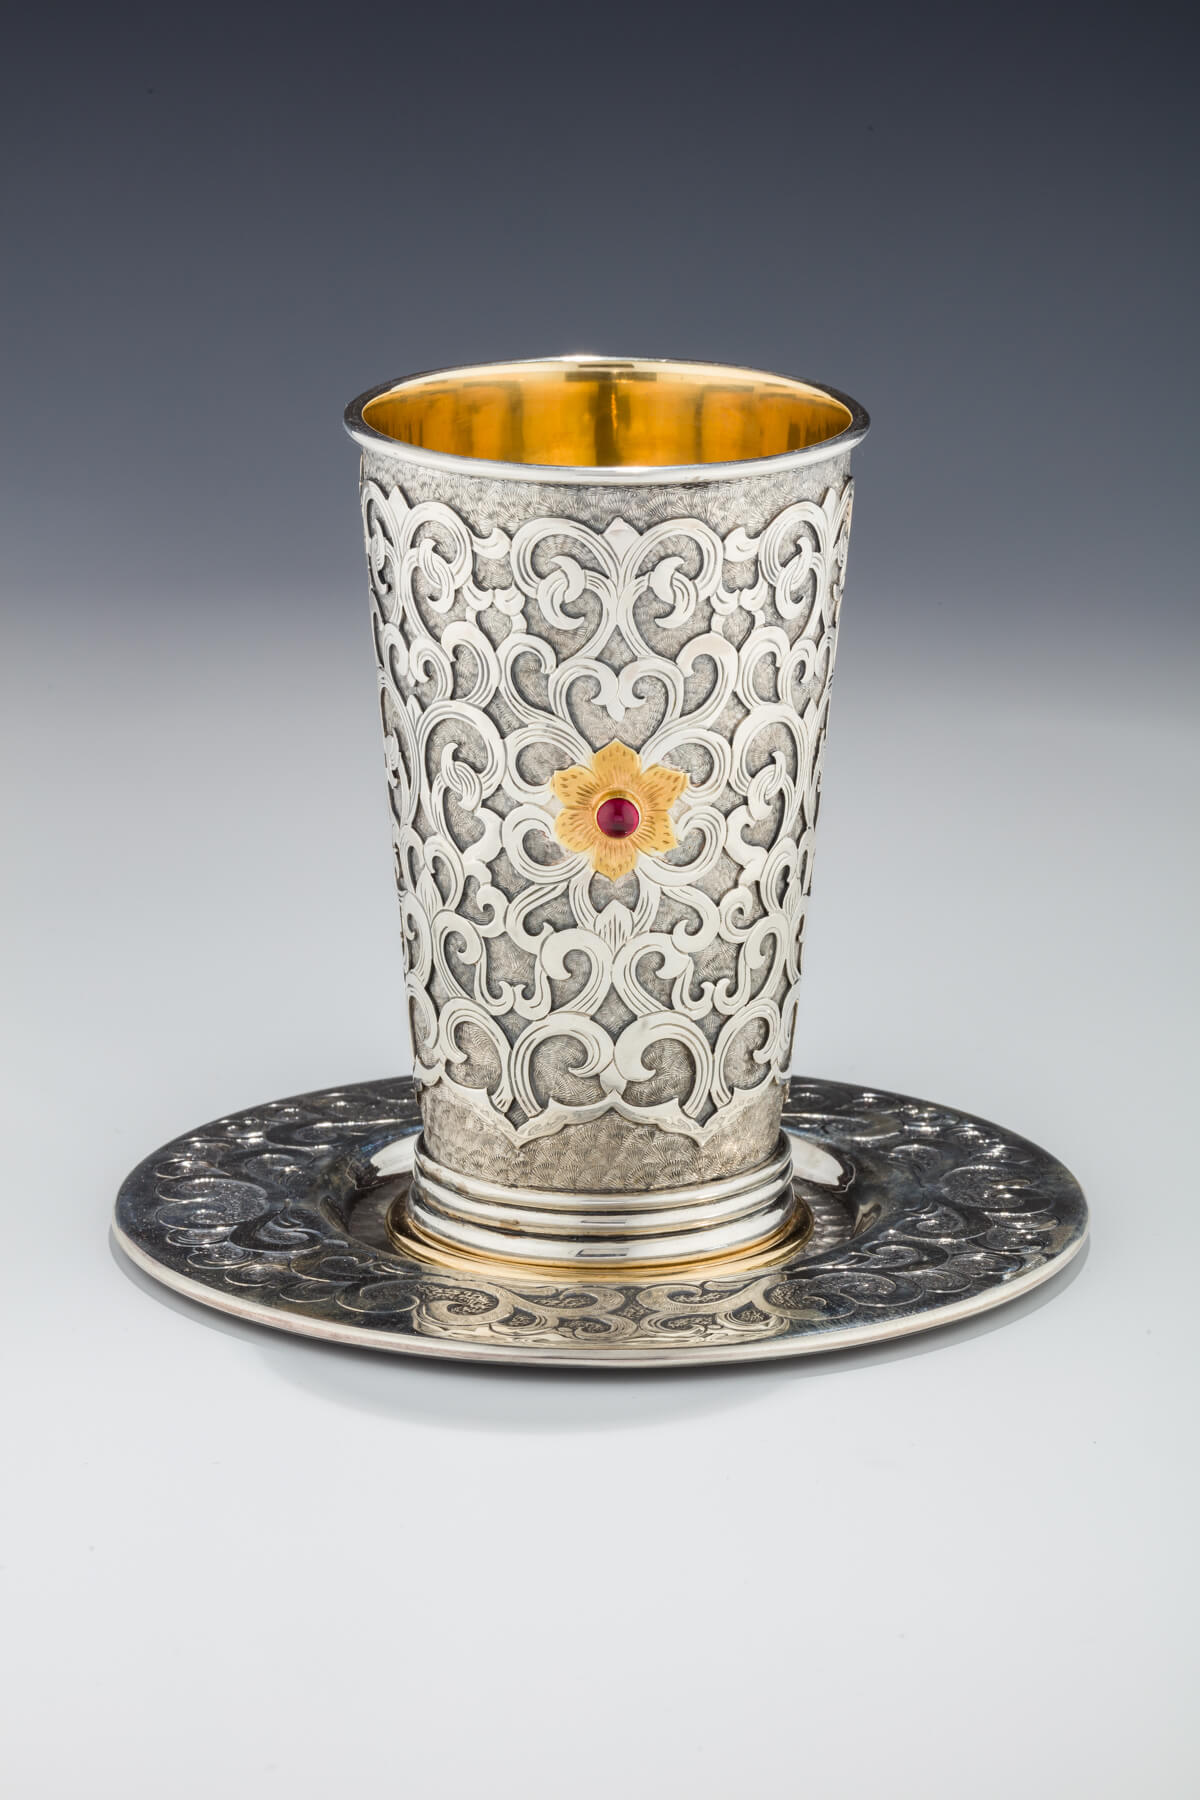 129. A Sterling Silver Kiddush Beaker by Yoel Rivlin